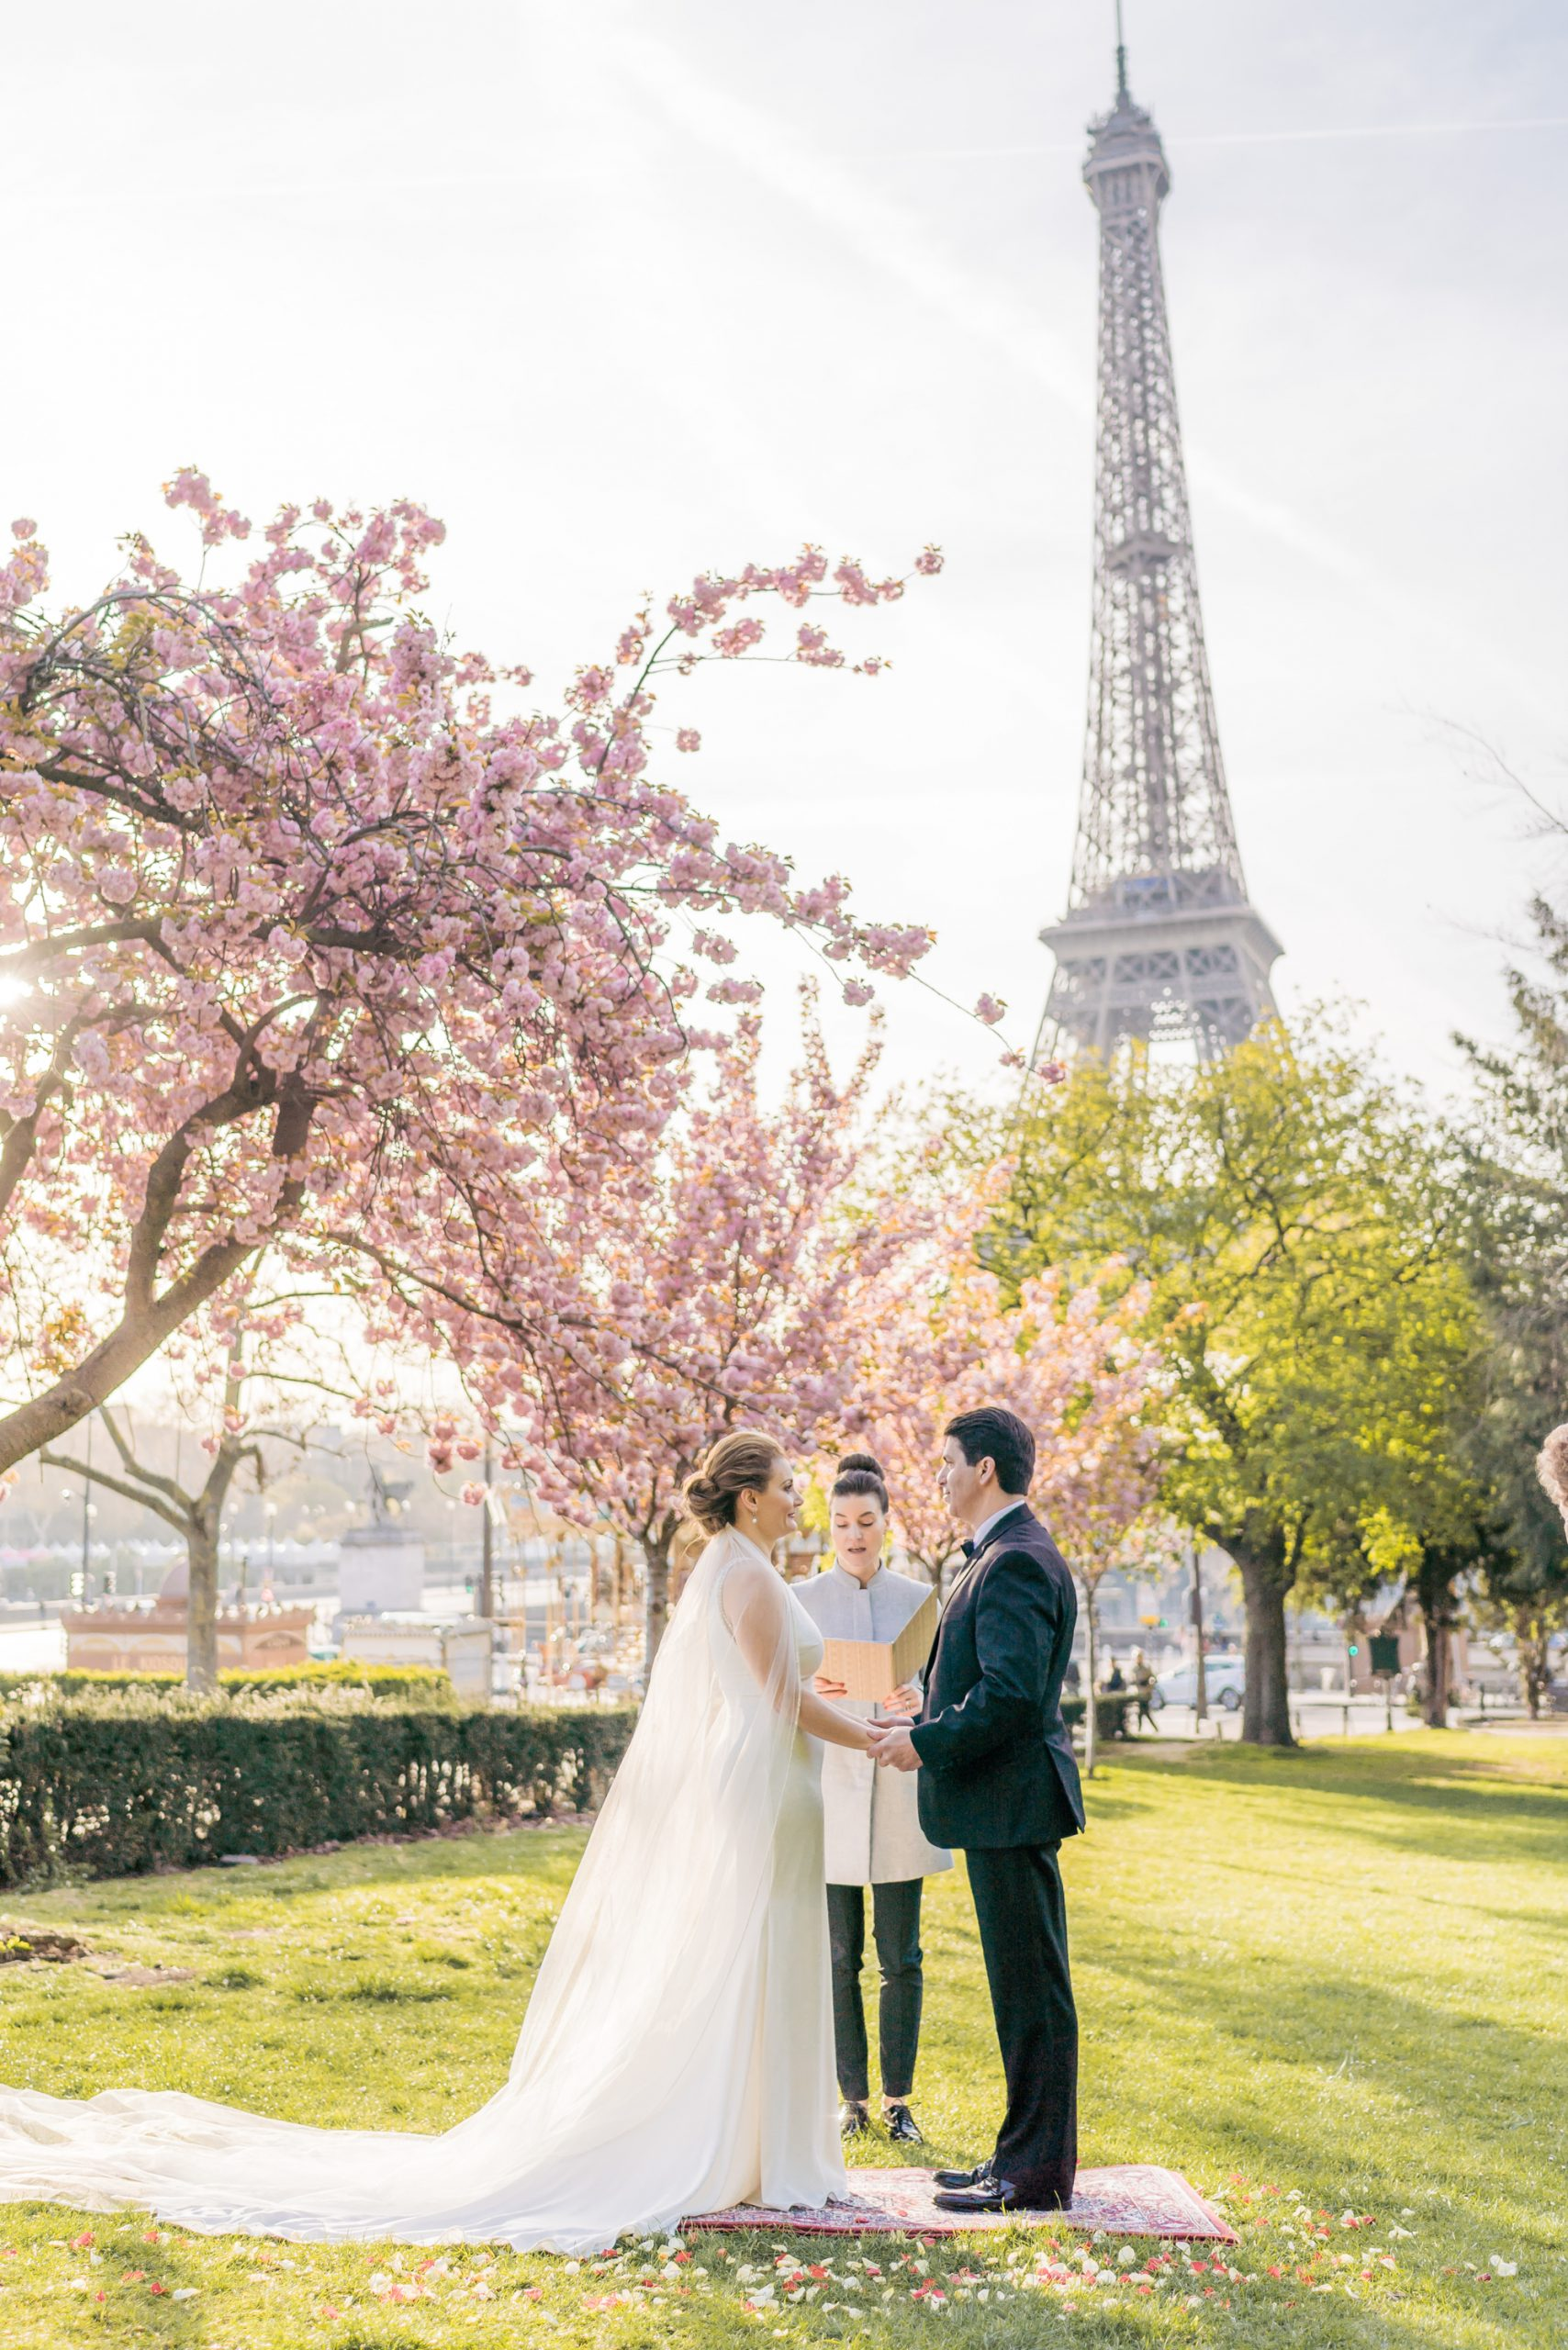 AN INTIMATE CEREMONY AMONGST THE CHERRY BLOSSOMS IN PARIS